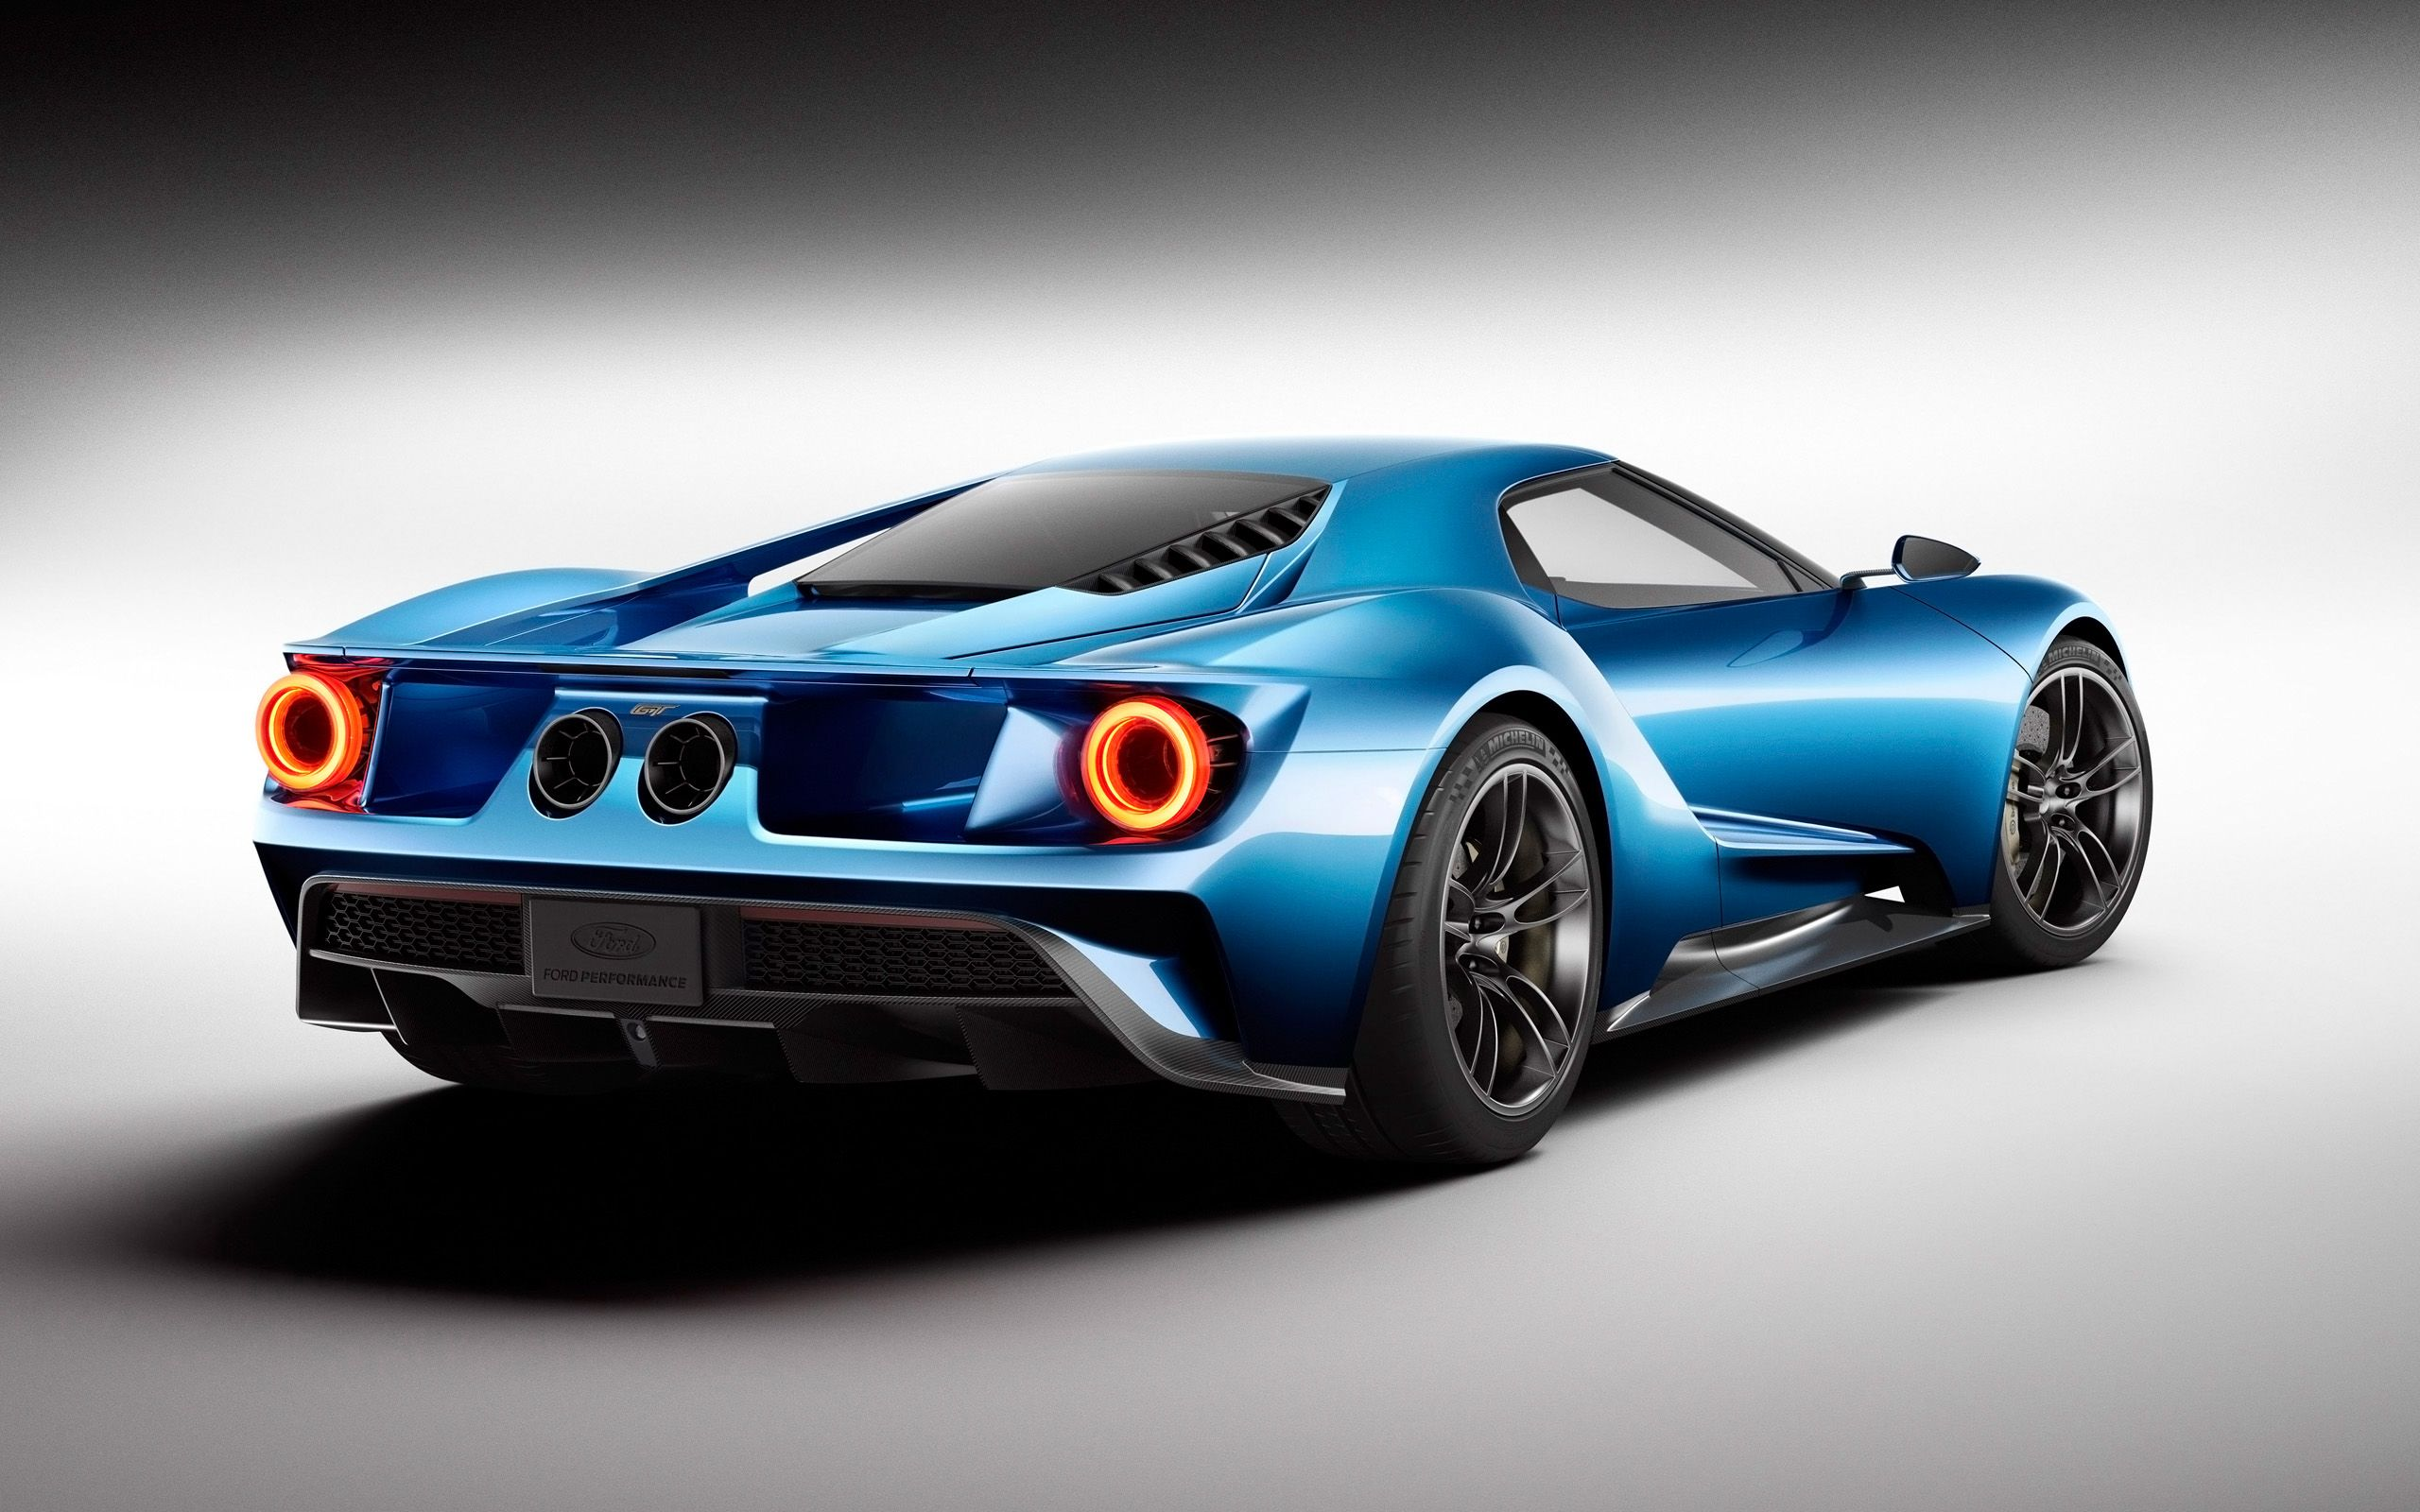 2016 Ford Gt 2 Wallpaper Hd Car Wallpapers 2560x1600 Ford Gt